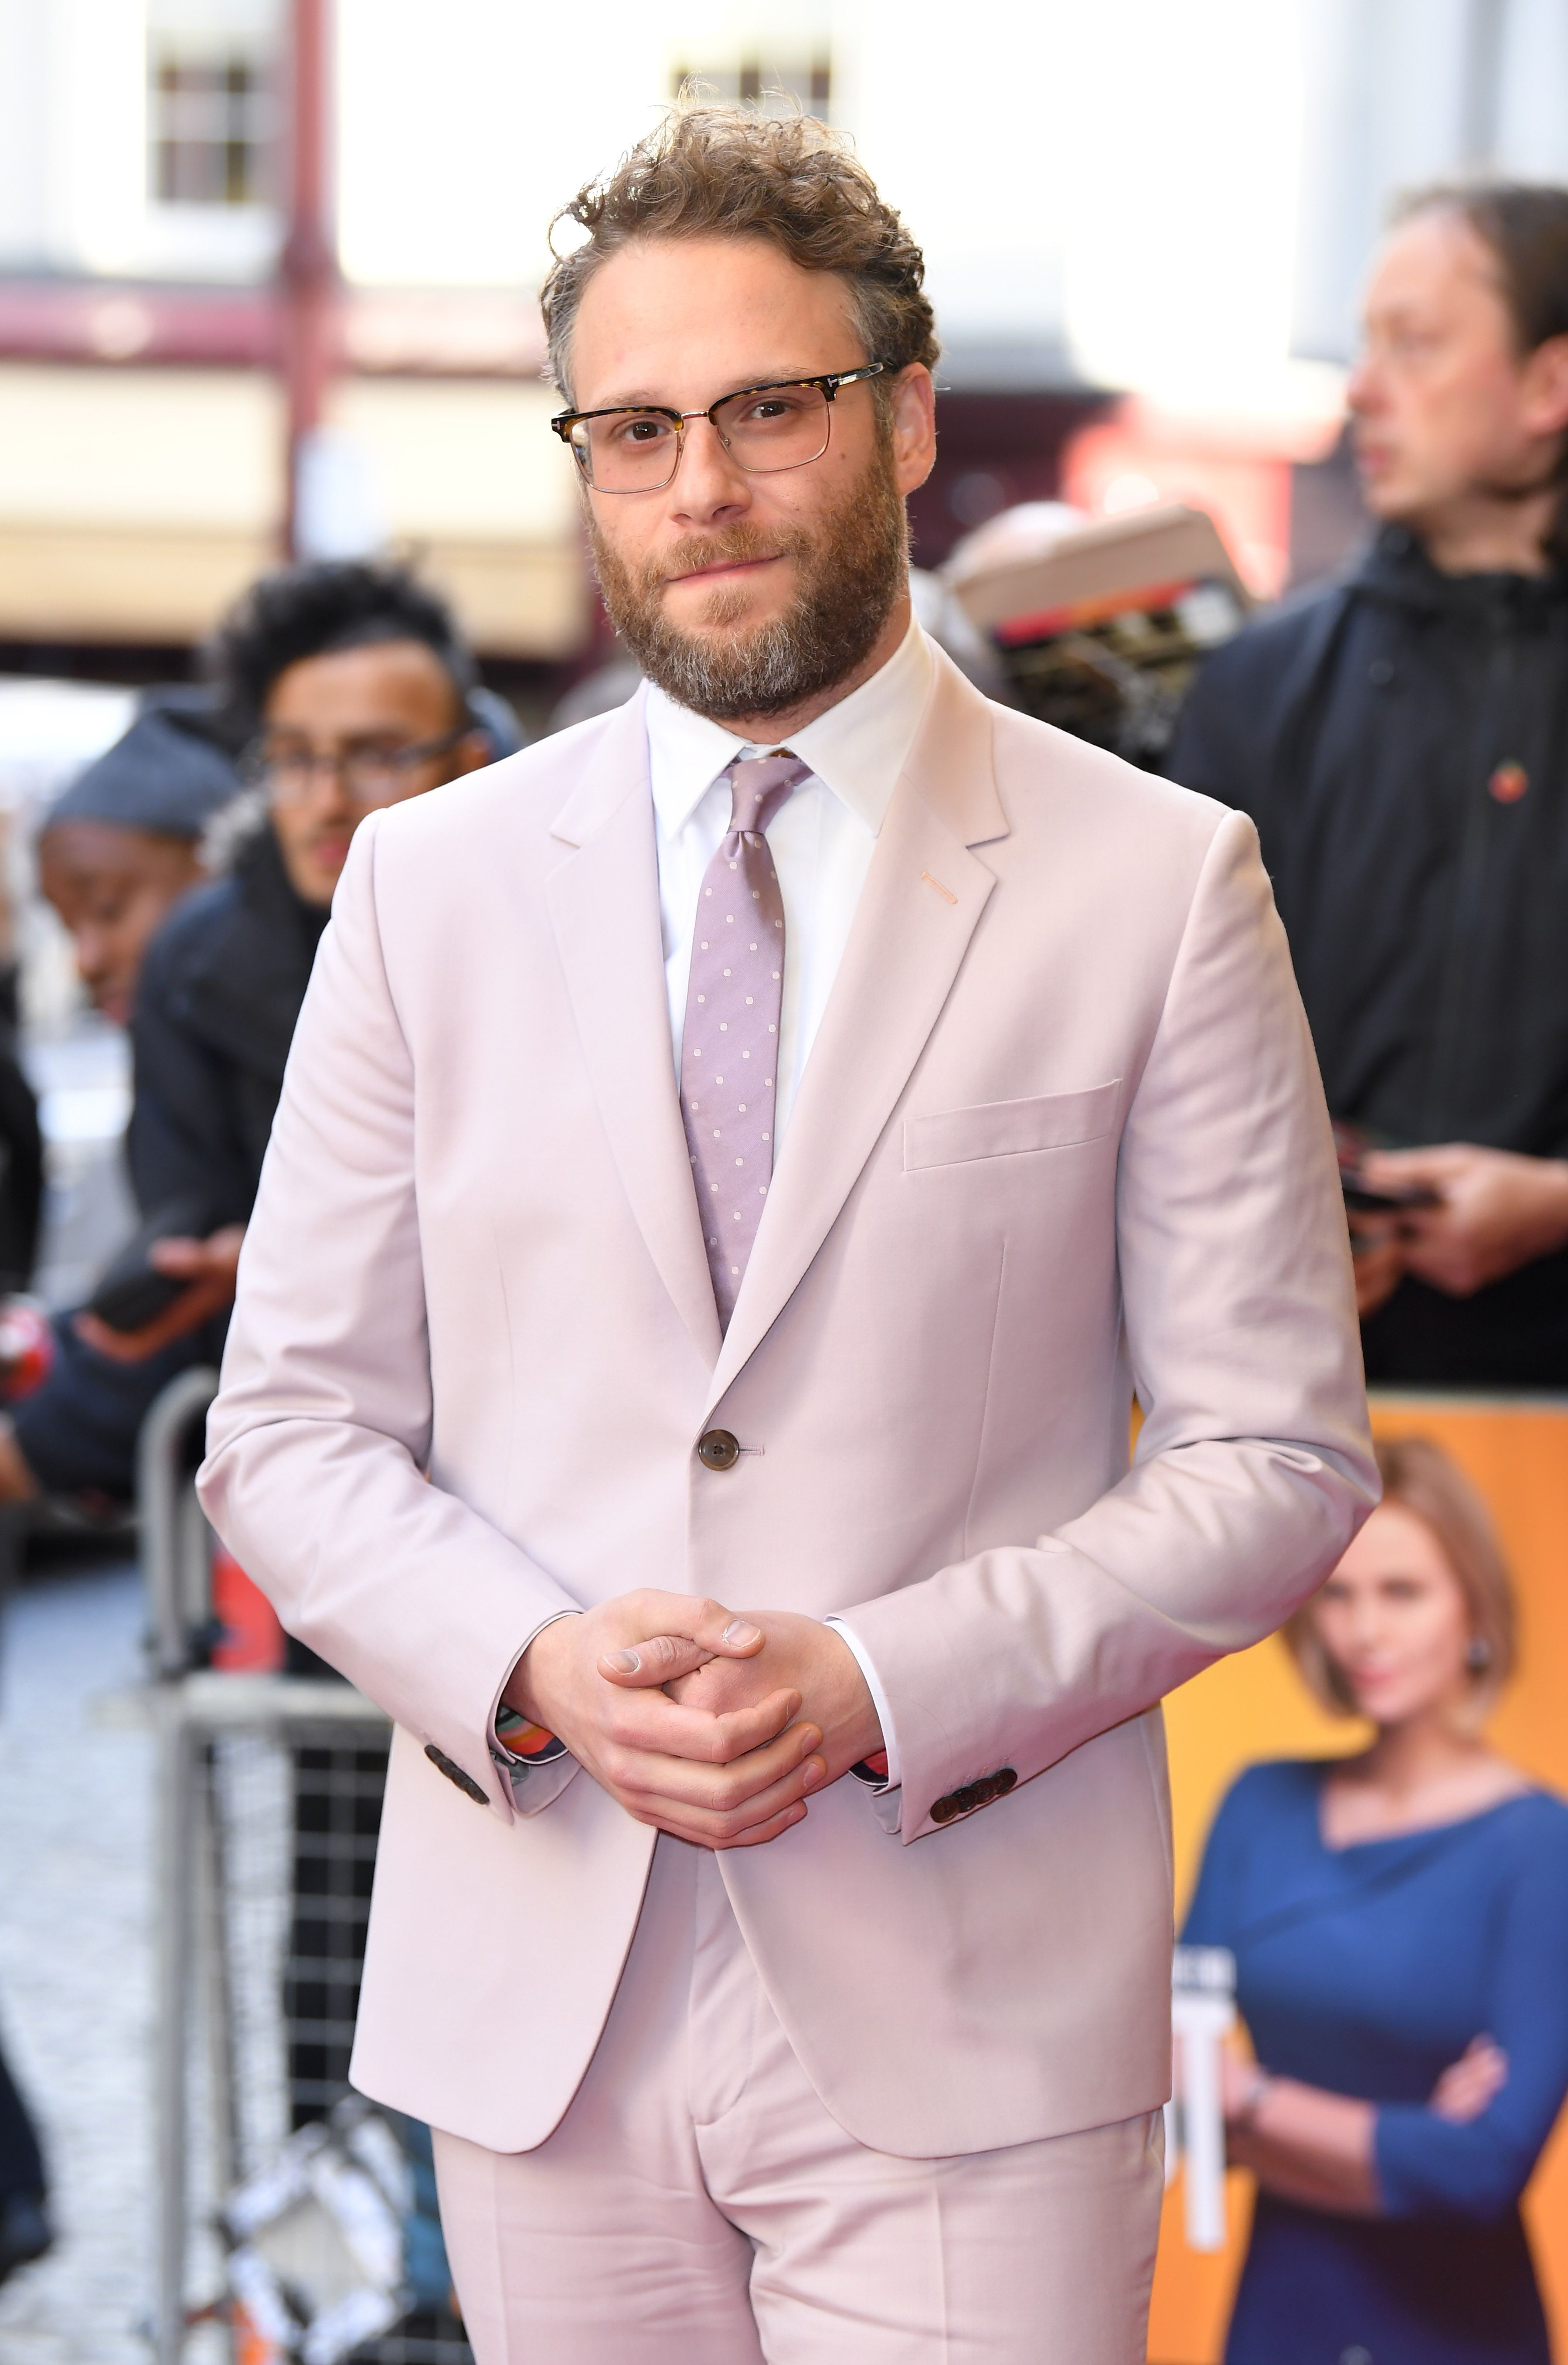 """Seth Rogen attends the """"Long Shot"""" special screening at Curzon Cinema Mayfair on April 25, 2019 in London, England."""